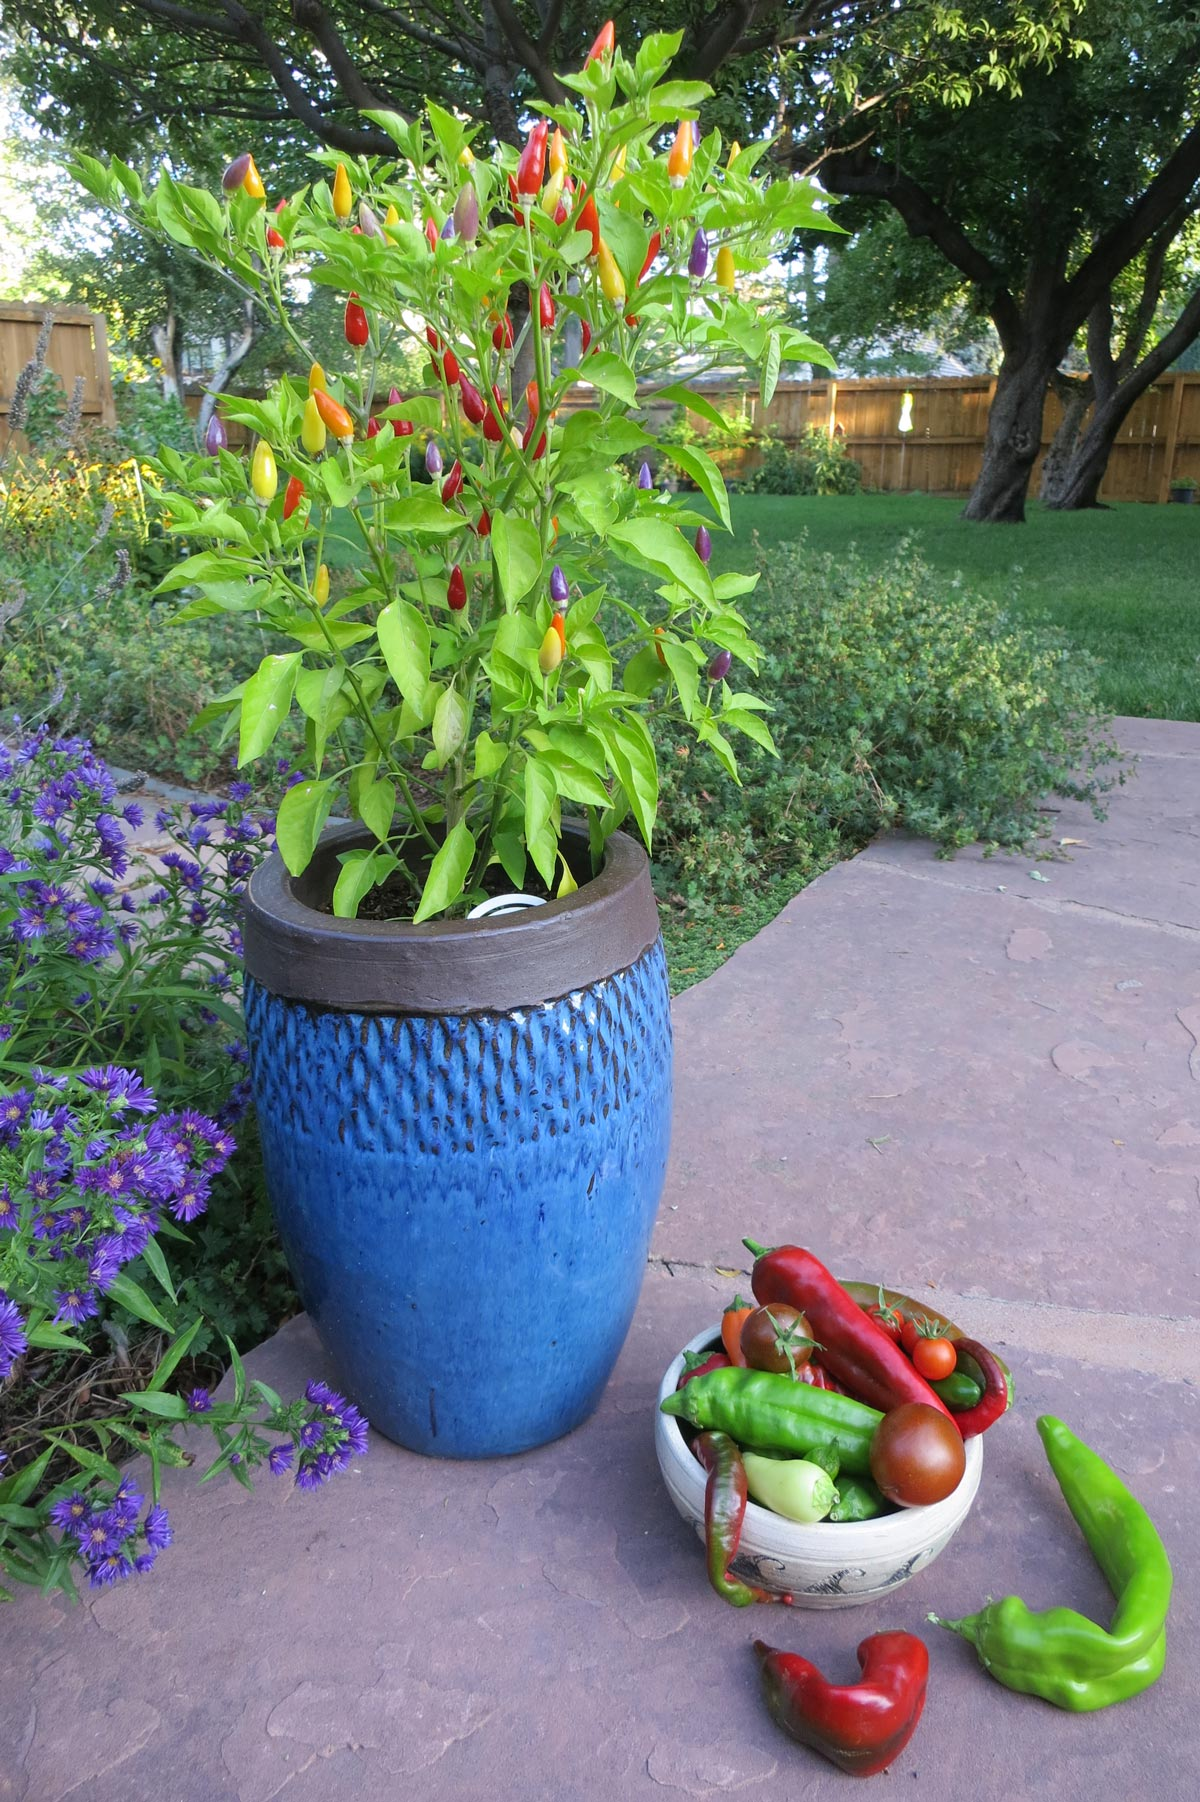 Can you put pepper plants together in one big pot?